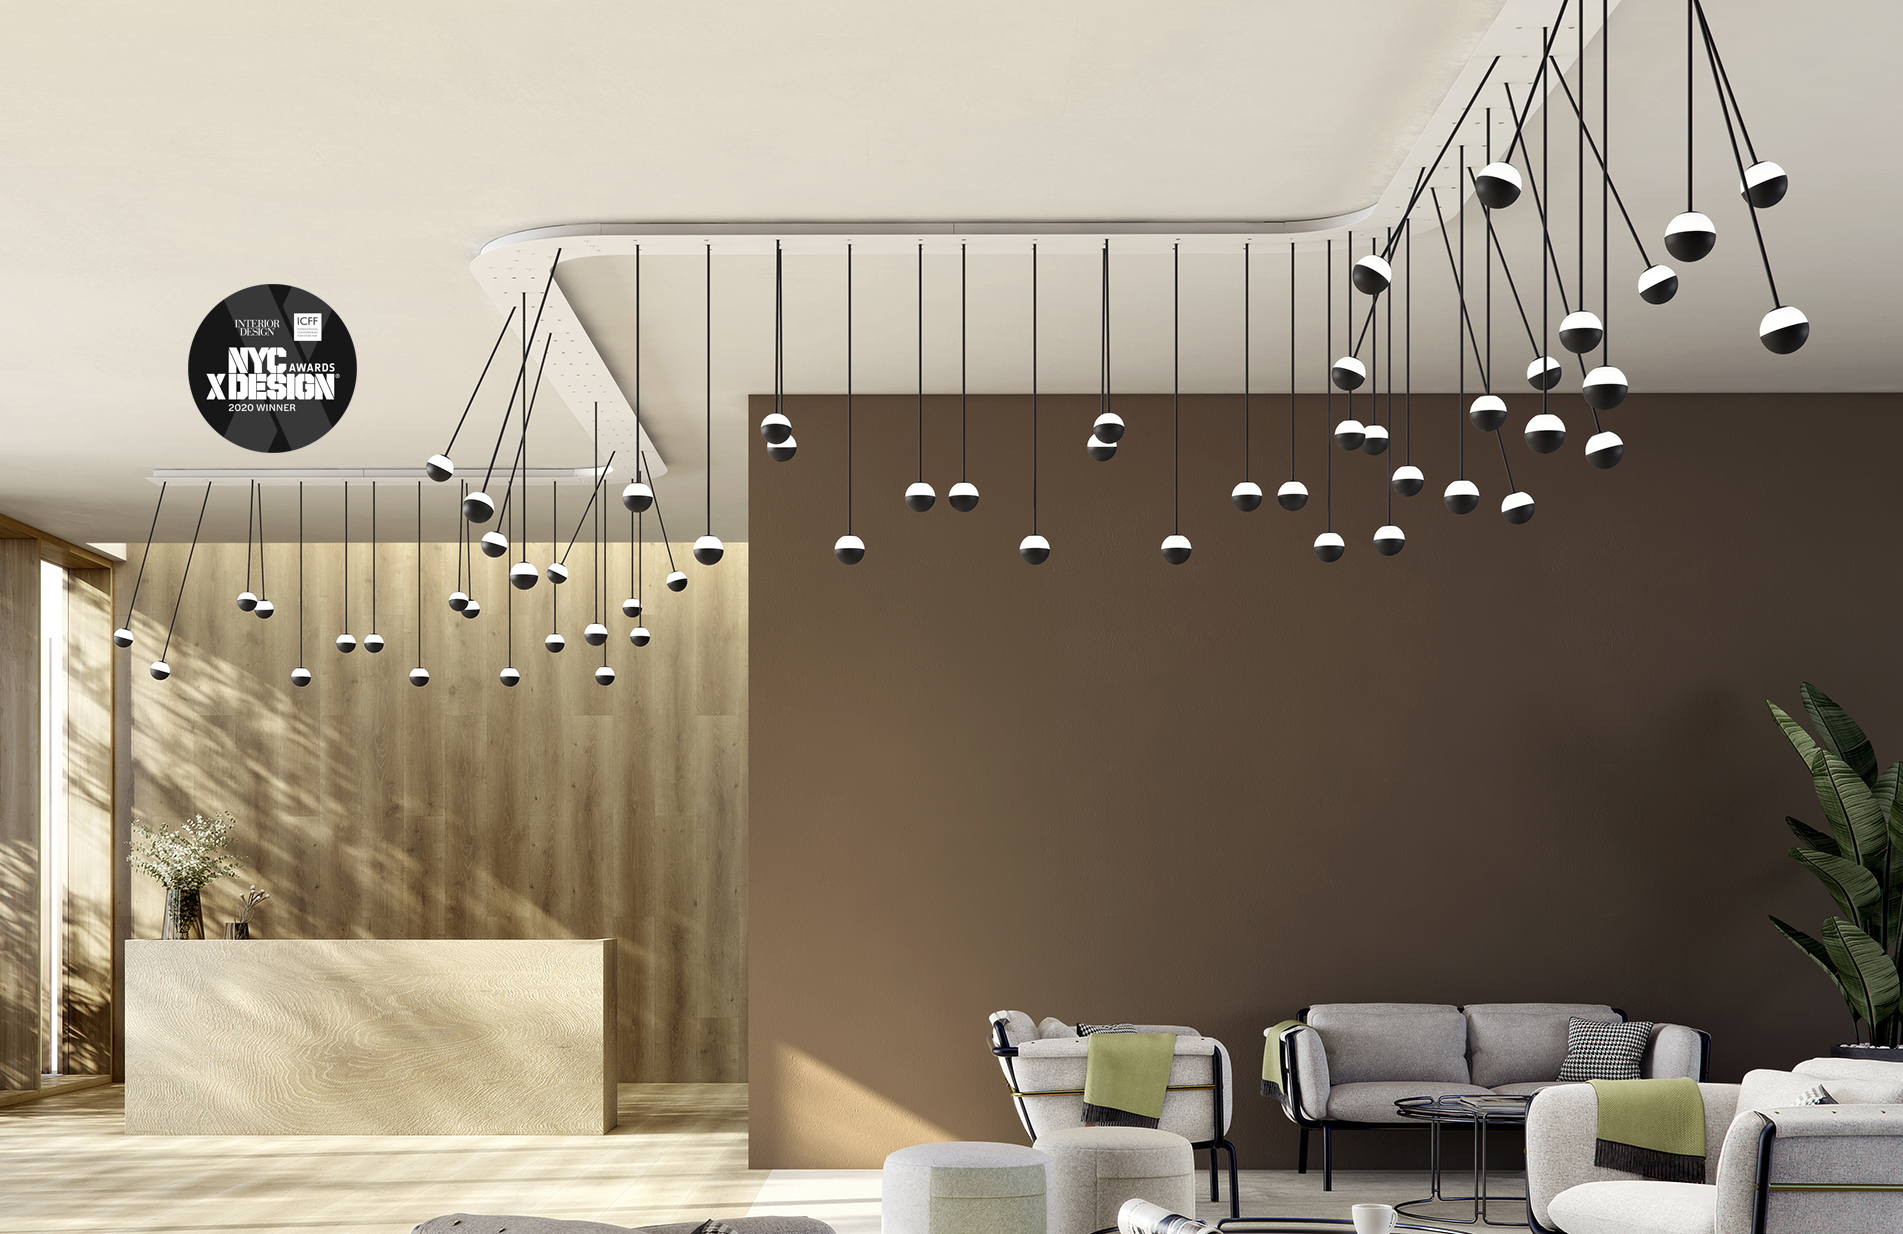 Estiluz Alfi Composition Suspension Lamp Img A01 Nycxdesign